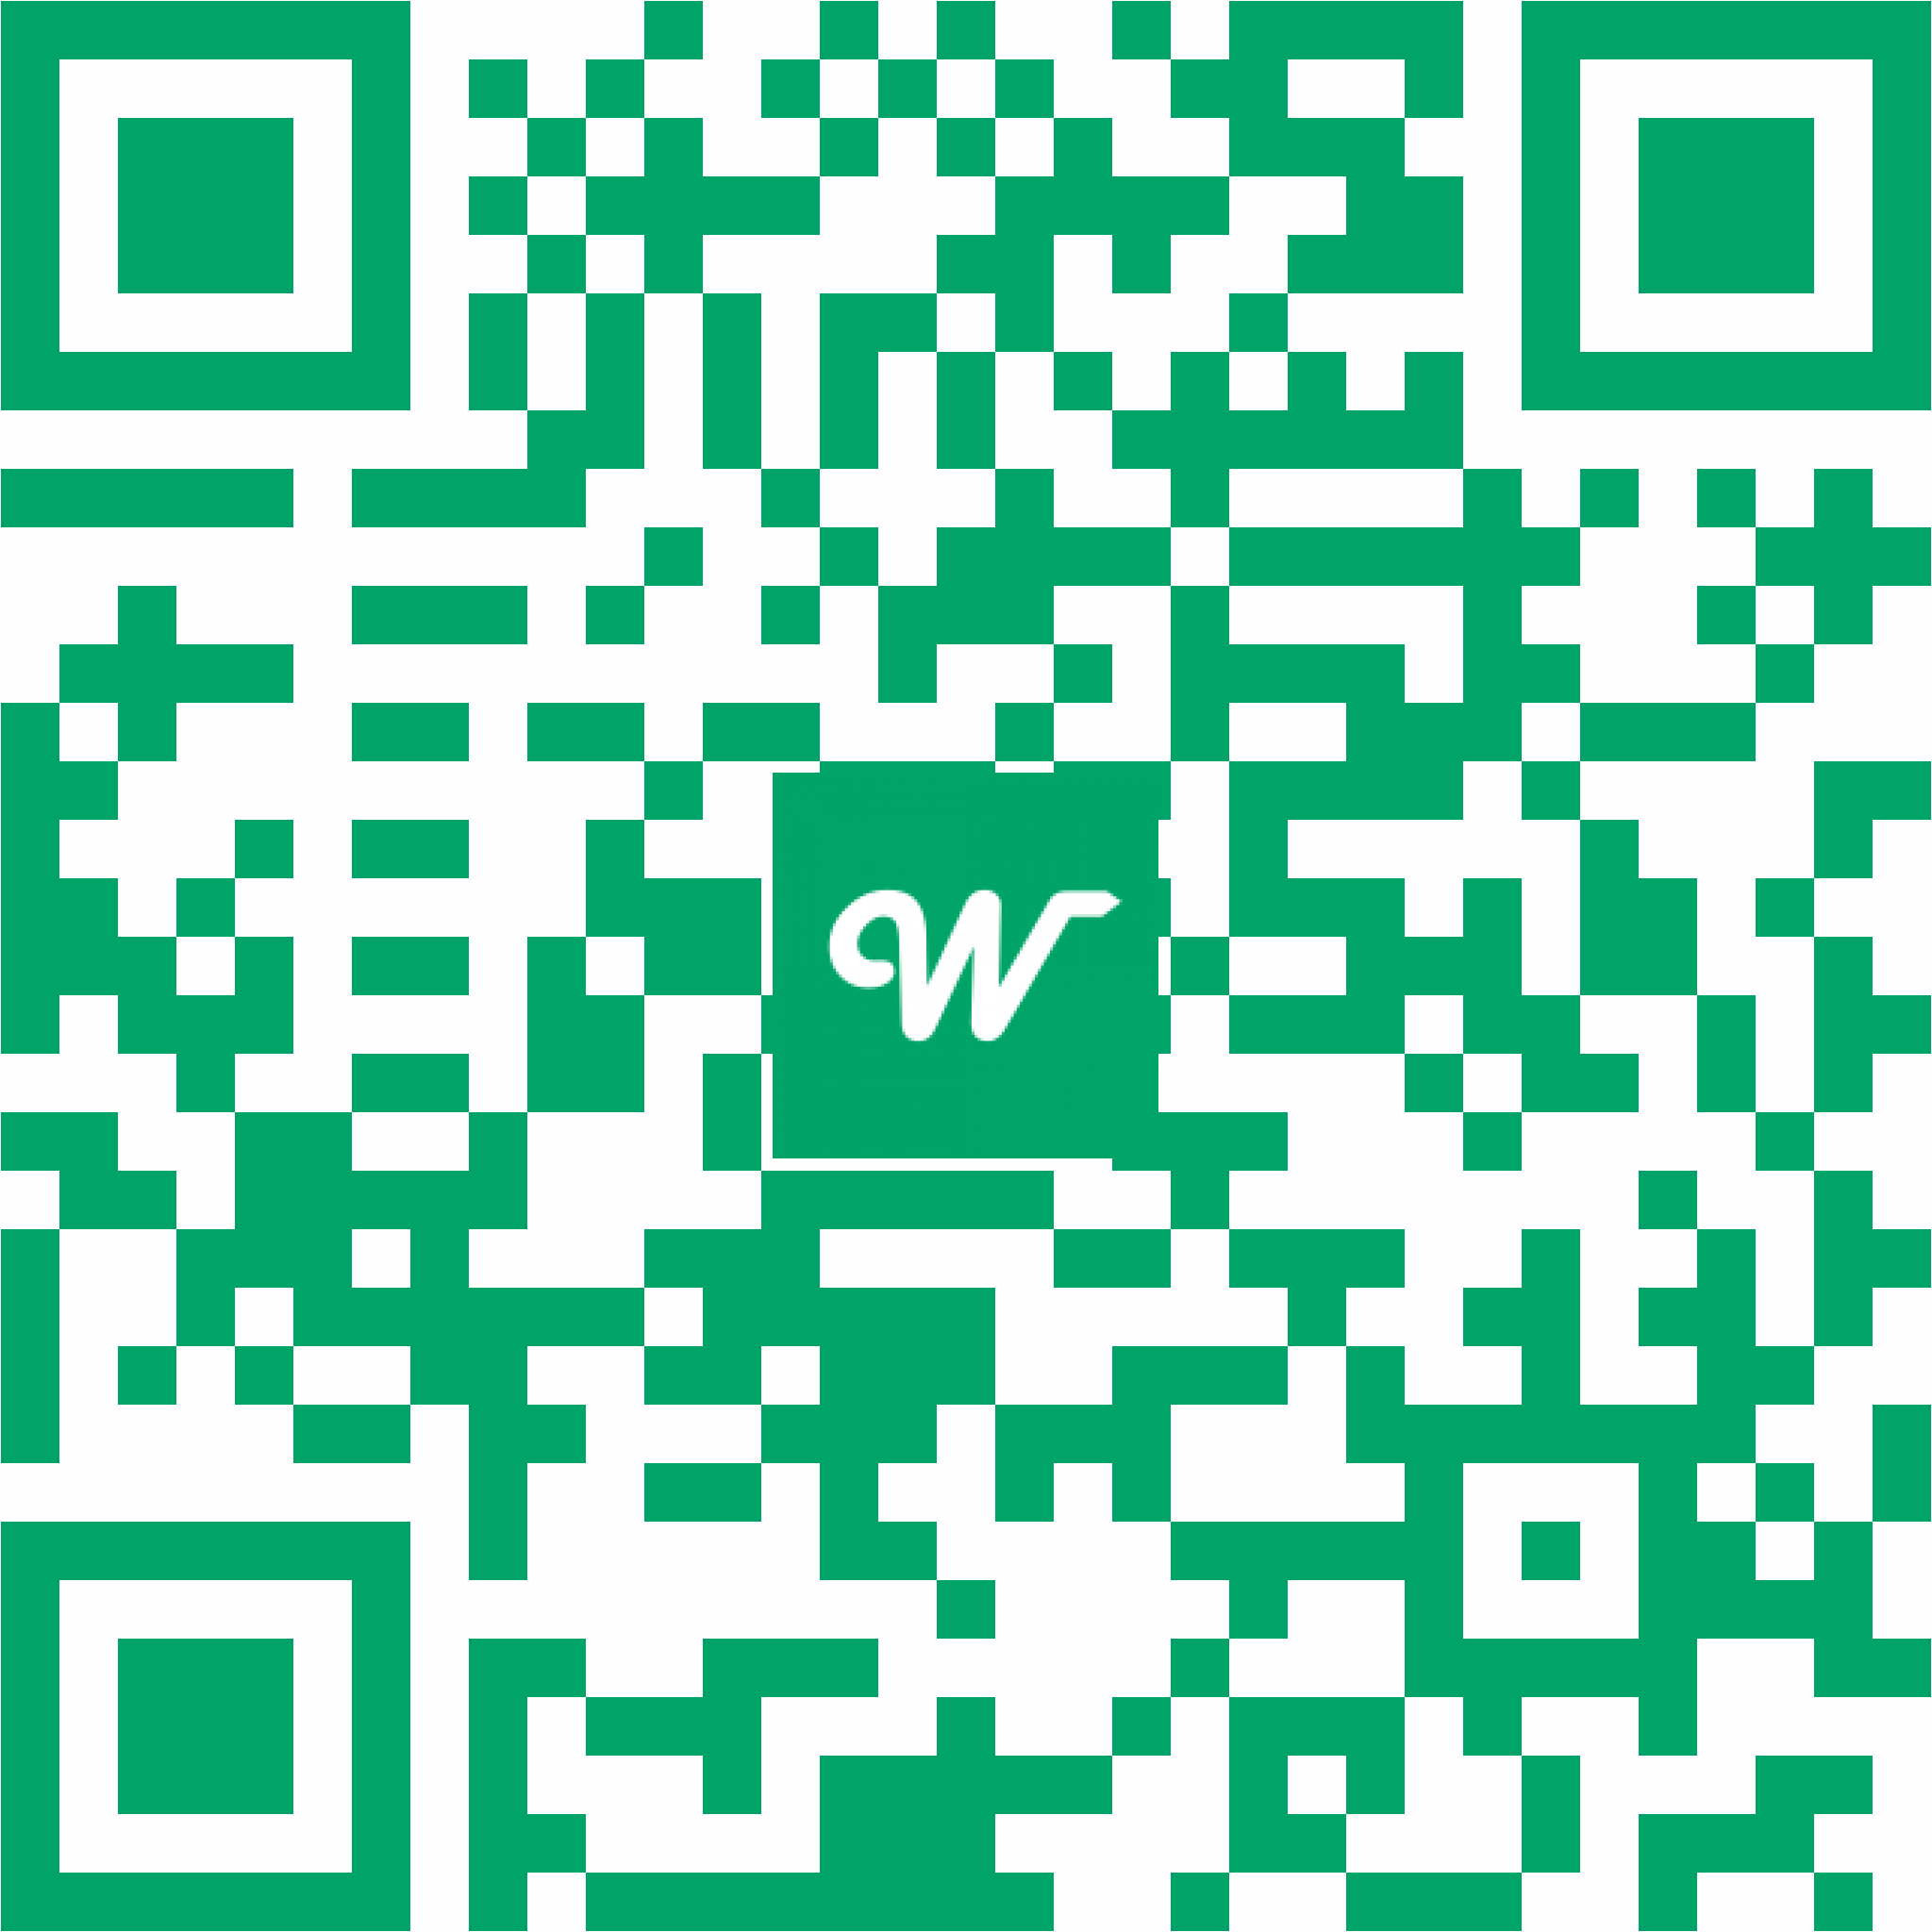 Printable QR code for Sun Inns Hotel Kepong